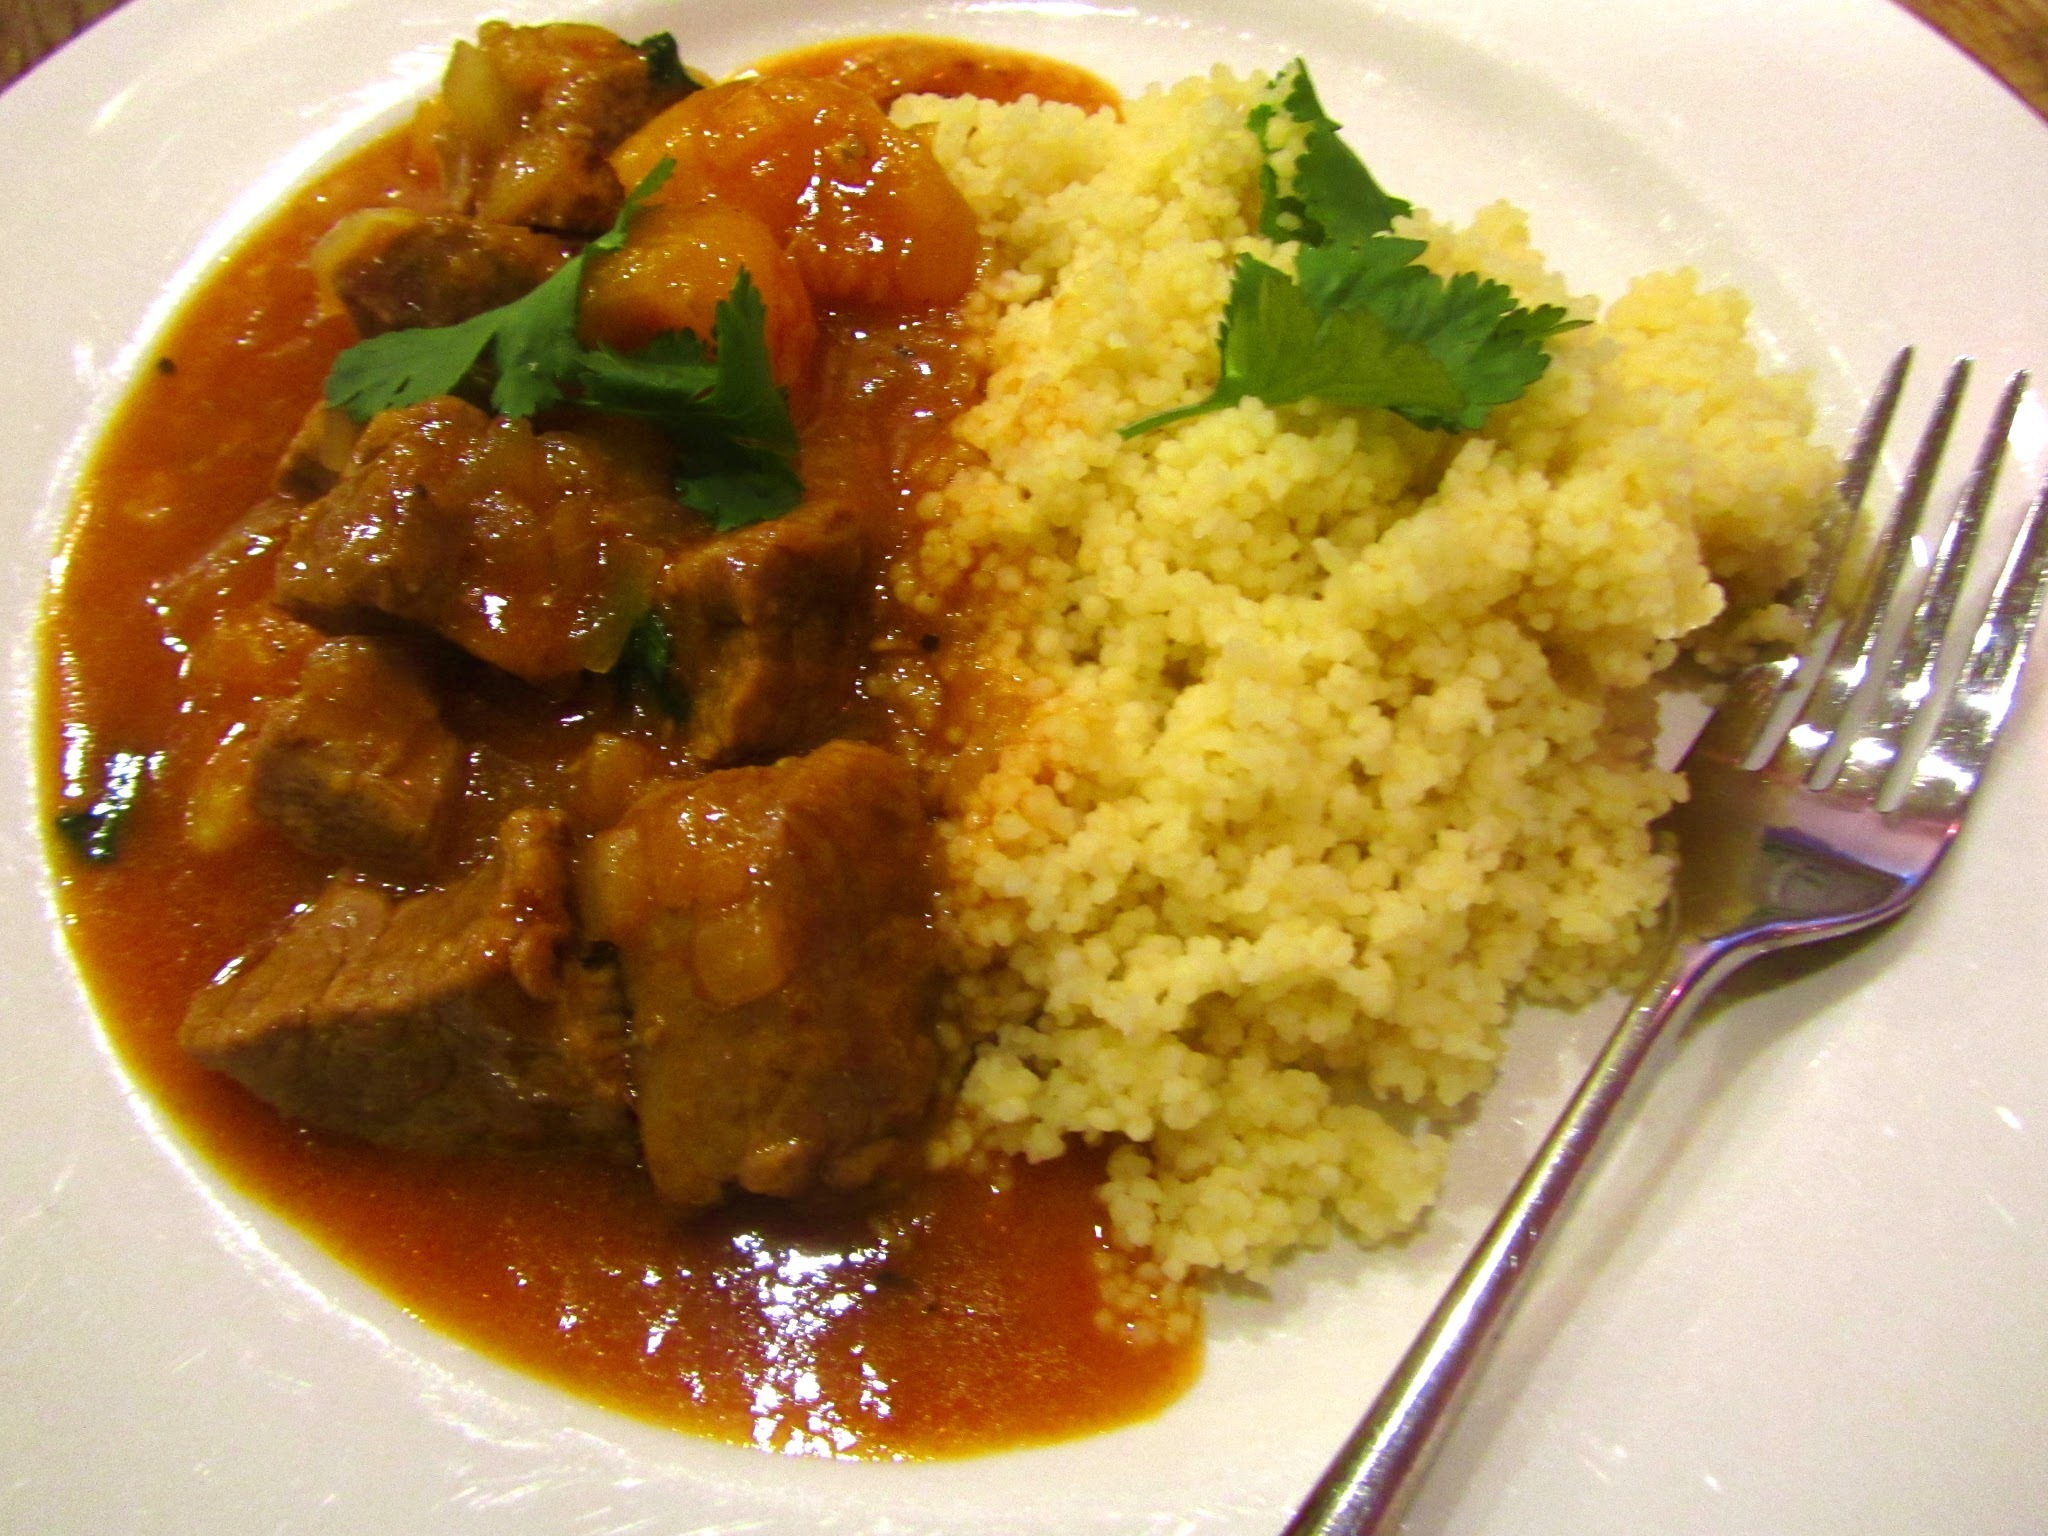 Lamb Tagine with cous cous